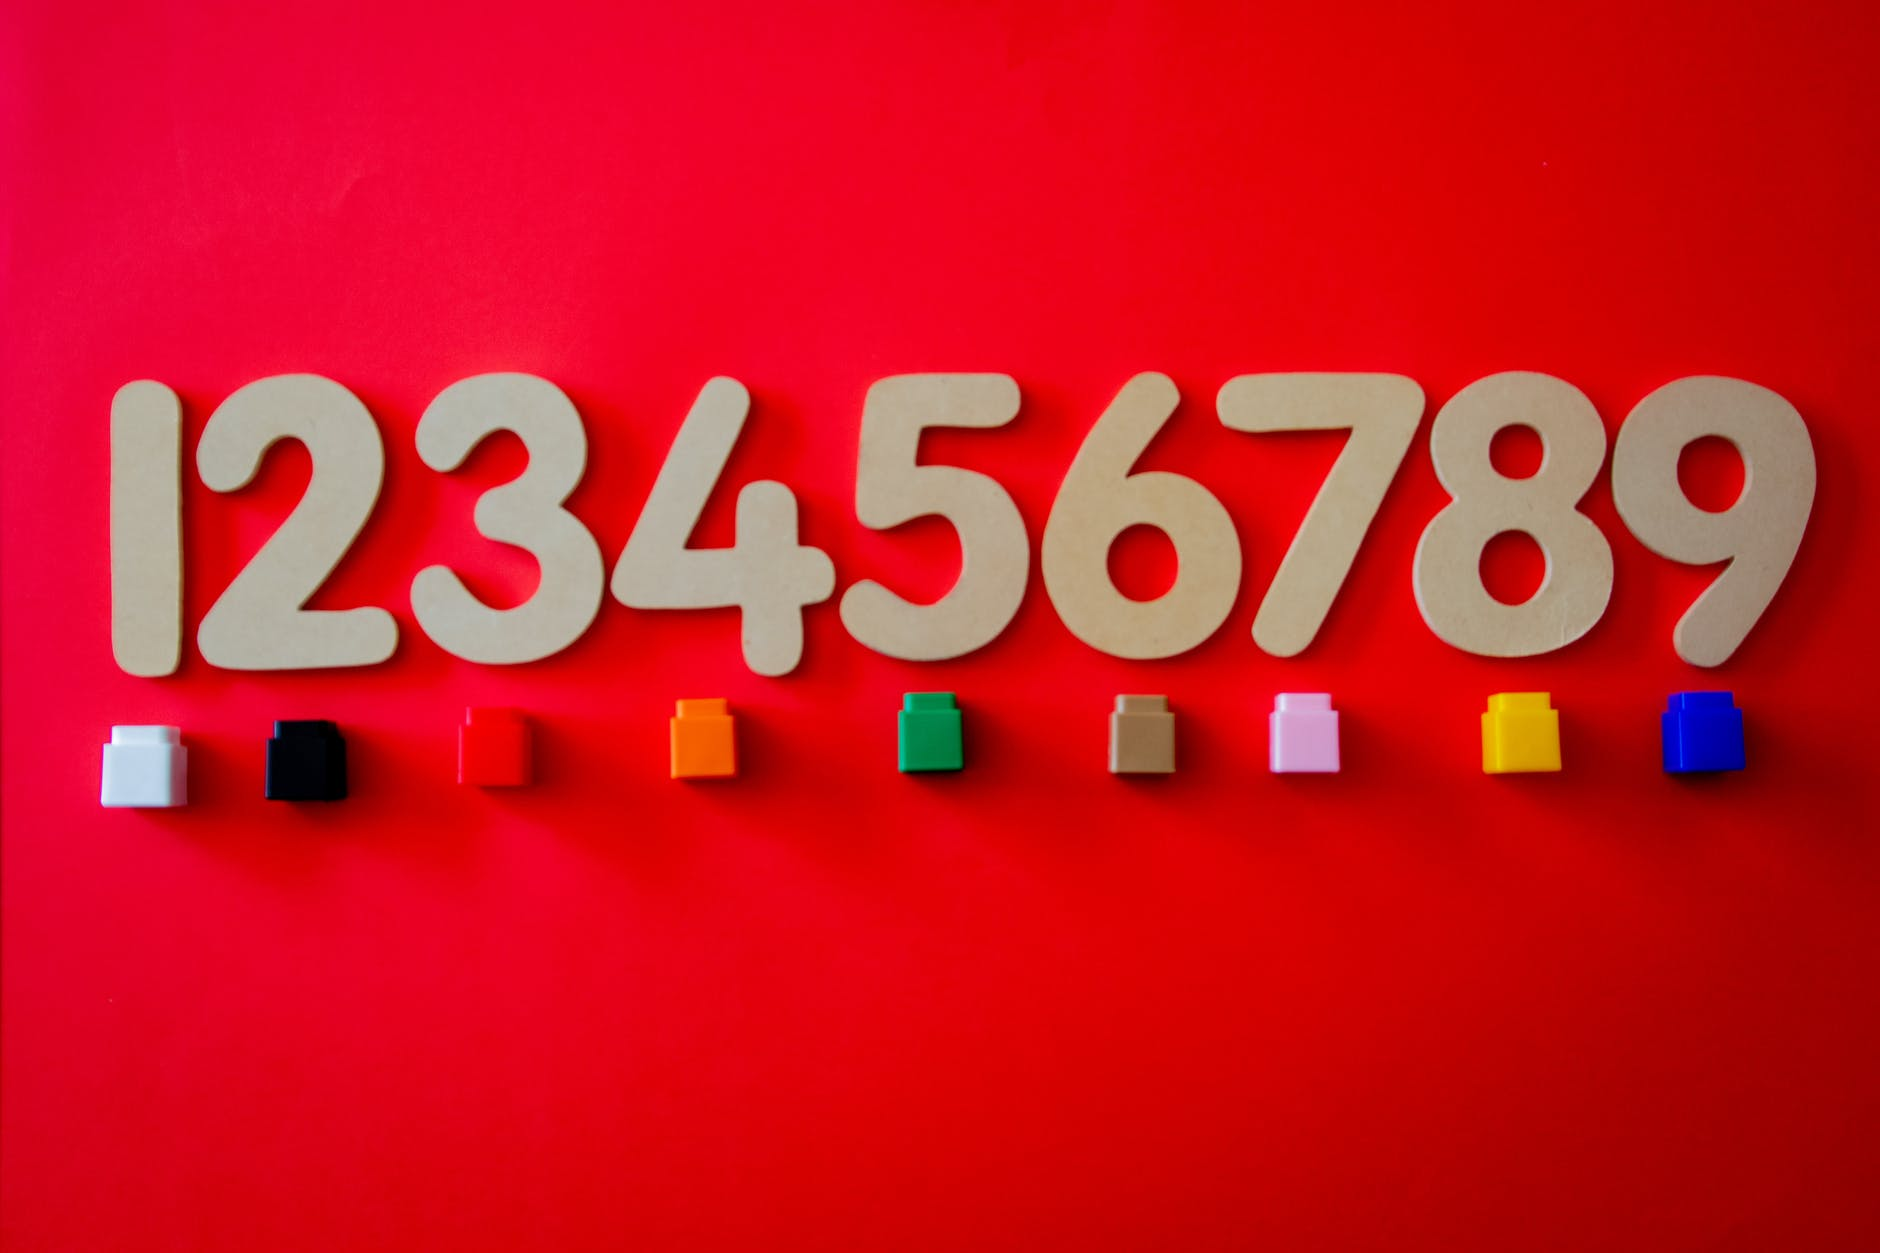 cut out numbers on a red background with different colored blocks underneath each